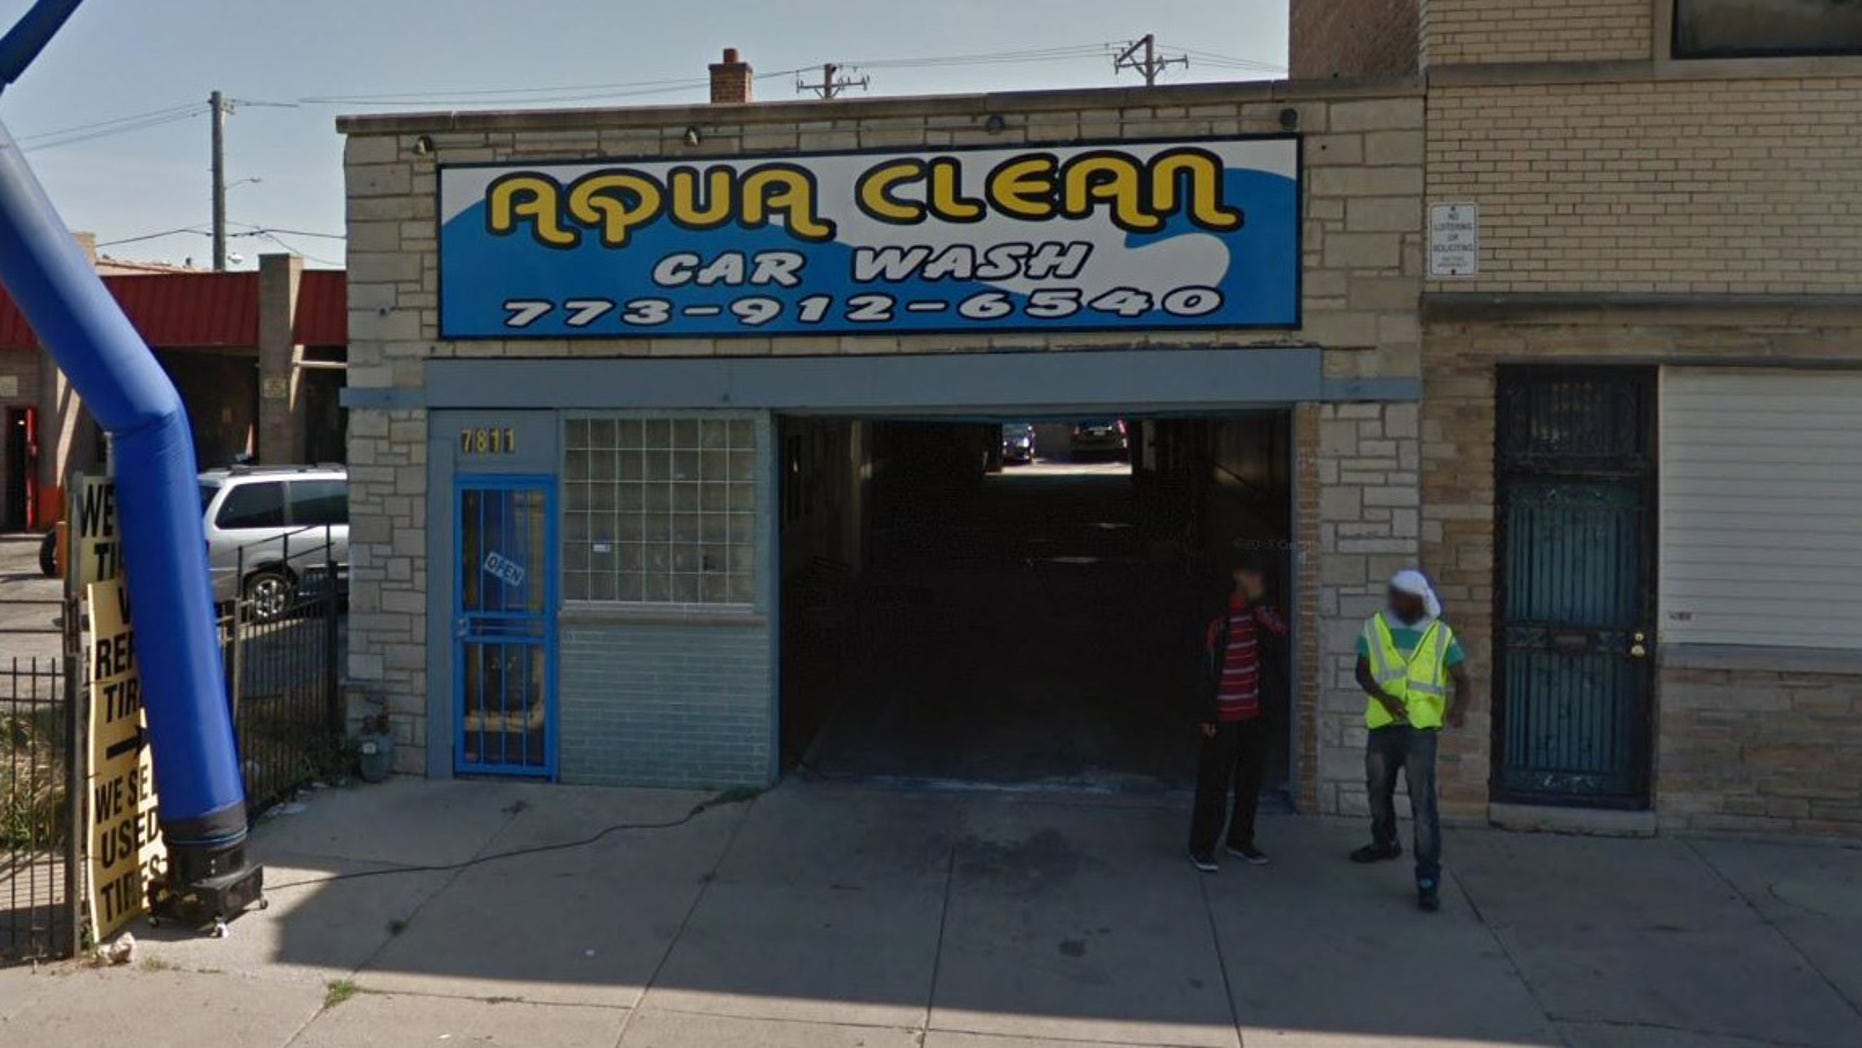 Outside the car wash where the robbery took place.